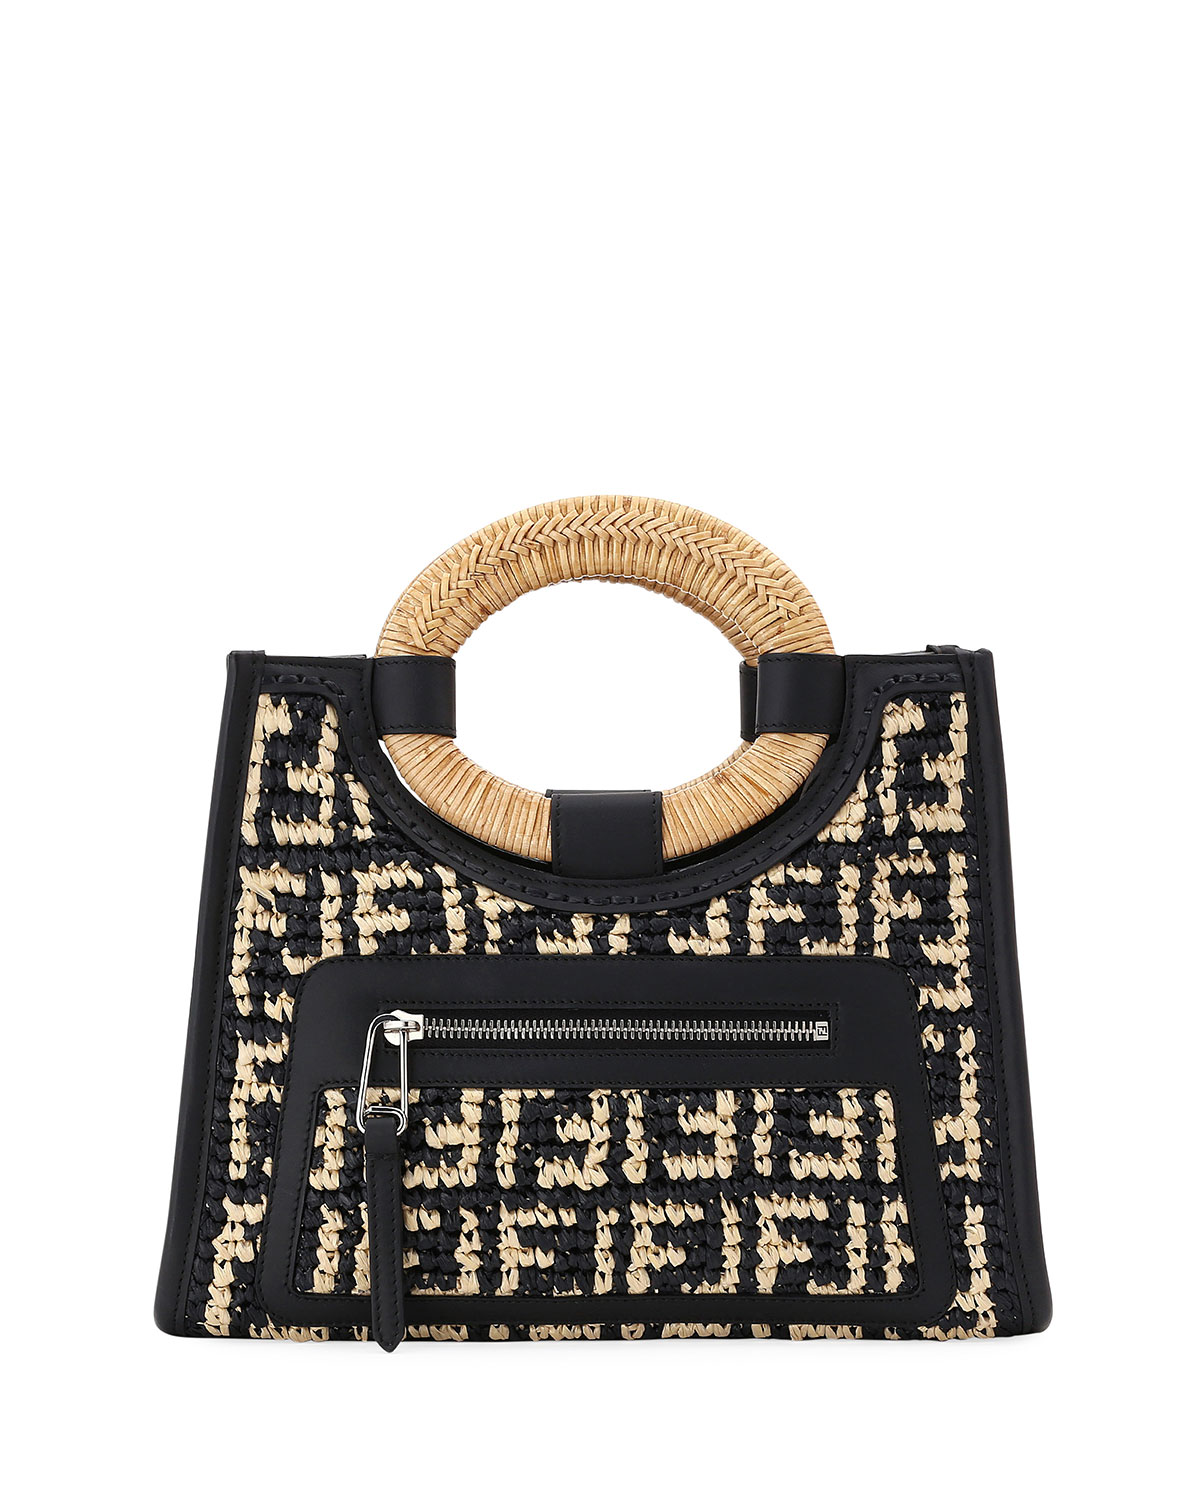 Runaway Small Ff Raffia Shop Tote Bag in Black Pattern